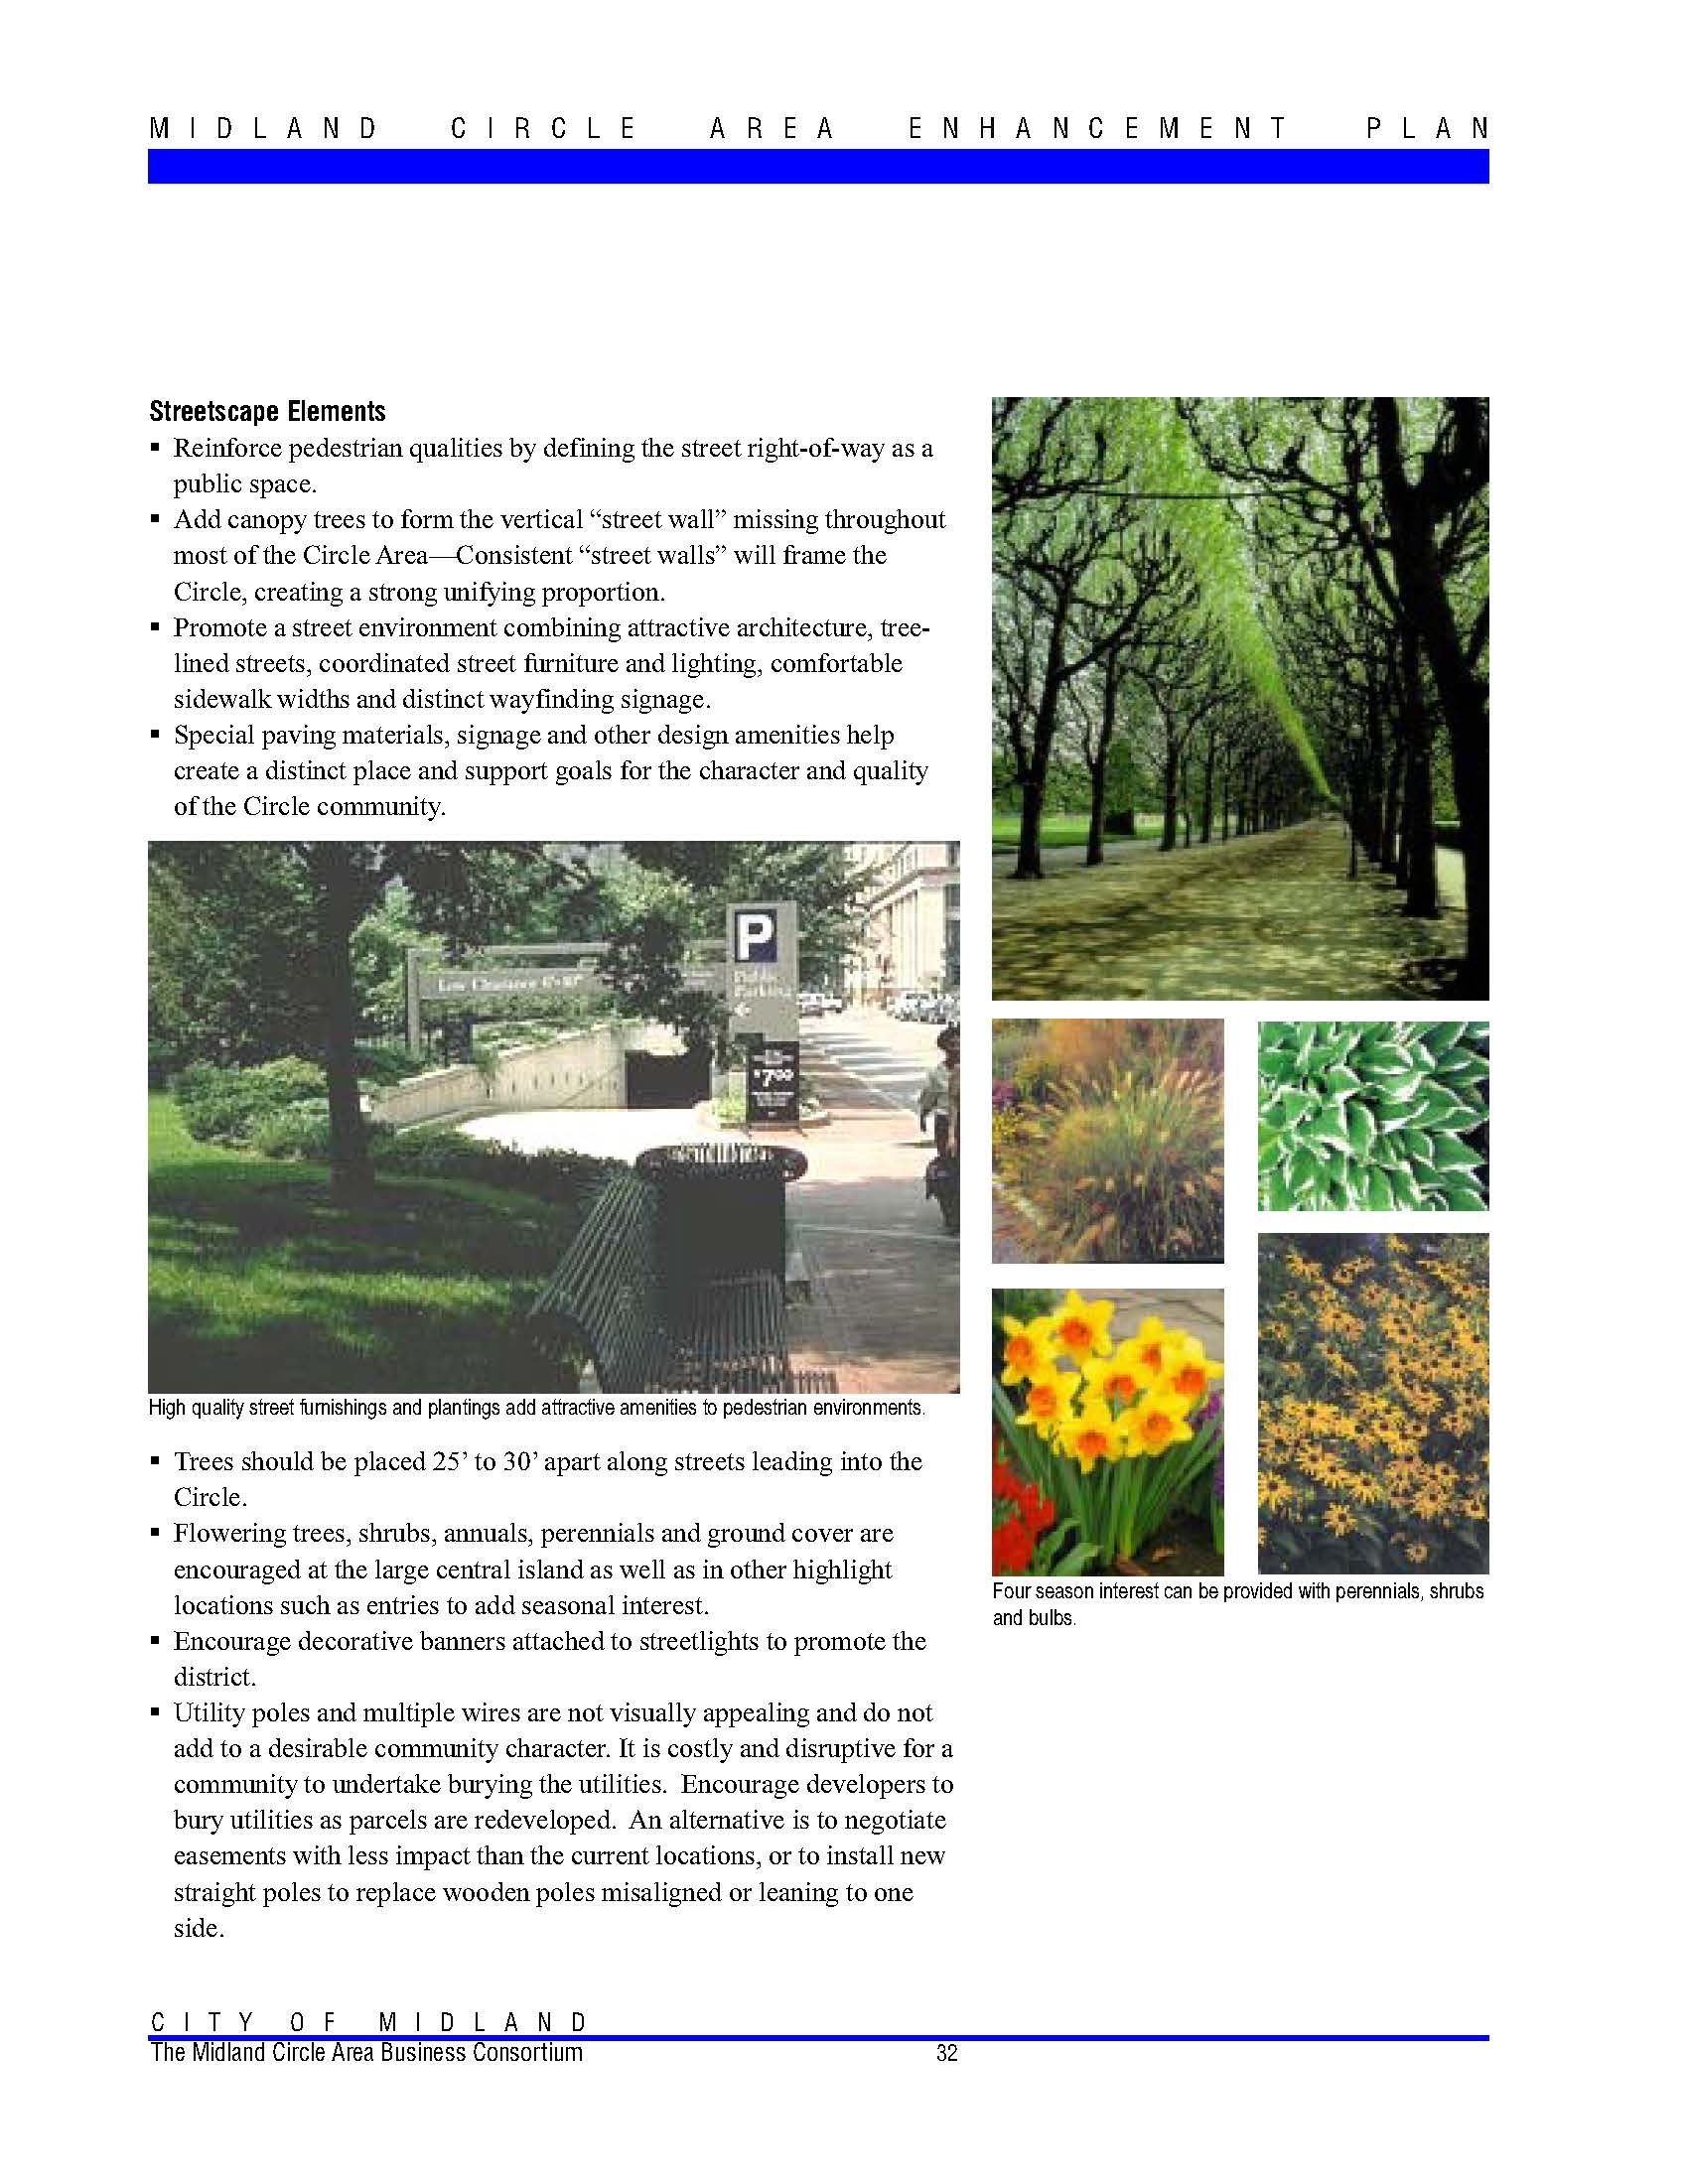 Ashman Circle Enhancement Plan_Page_34.jpg